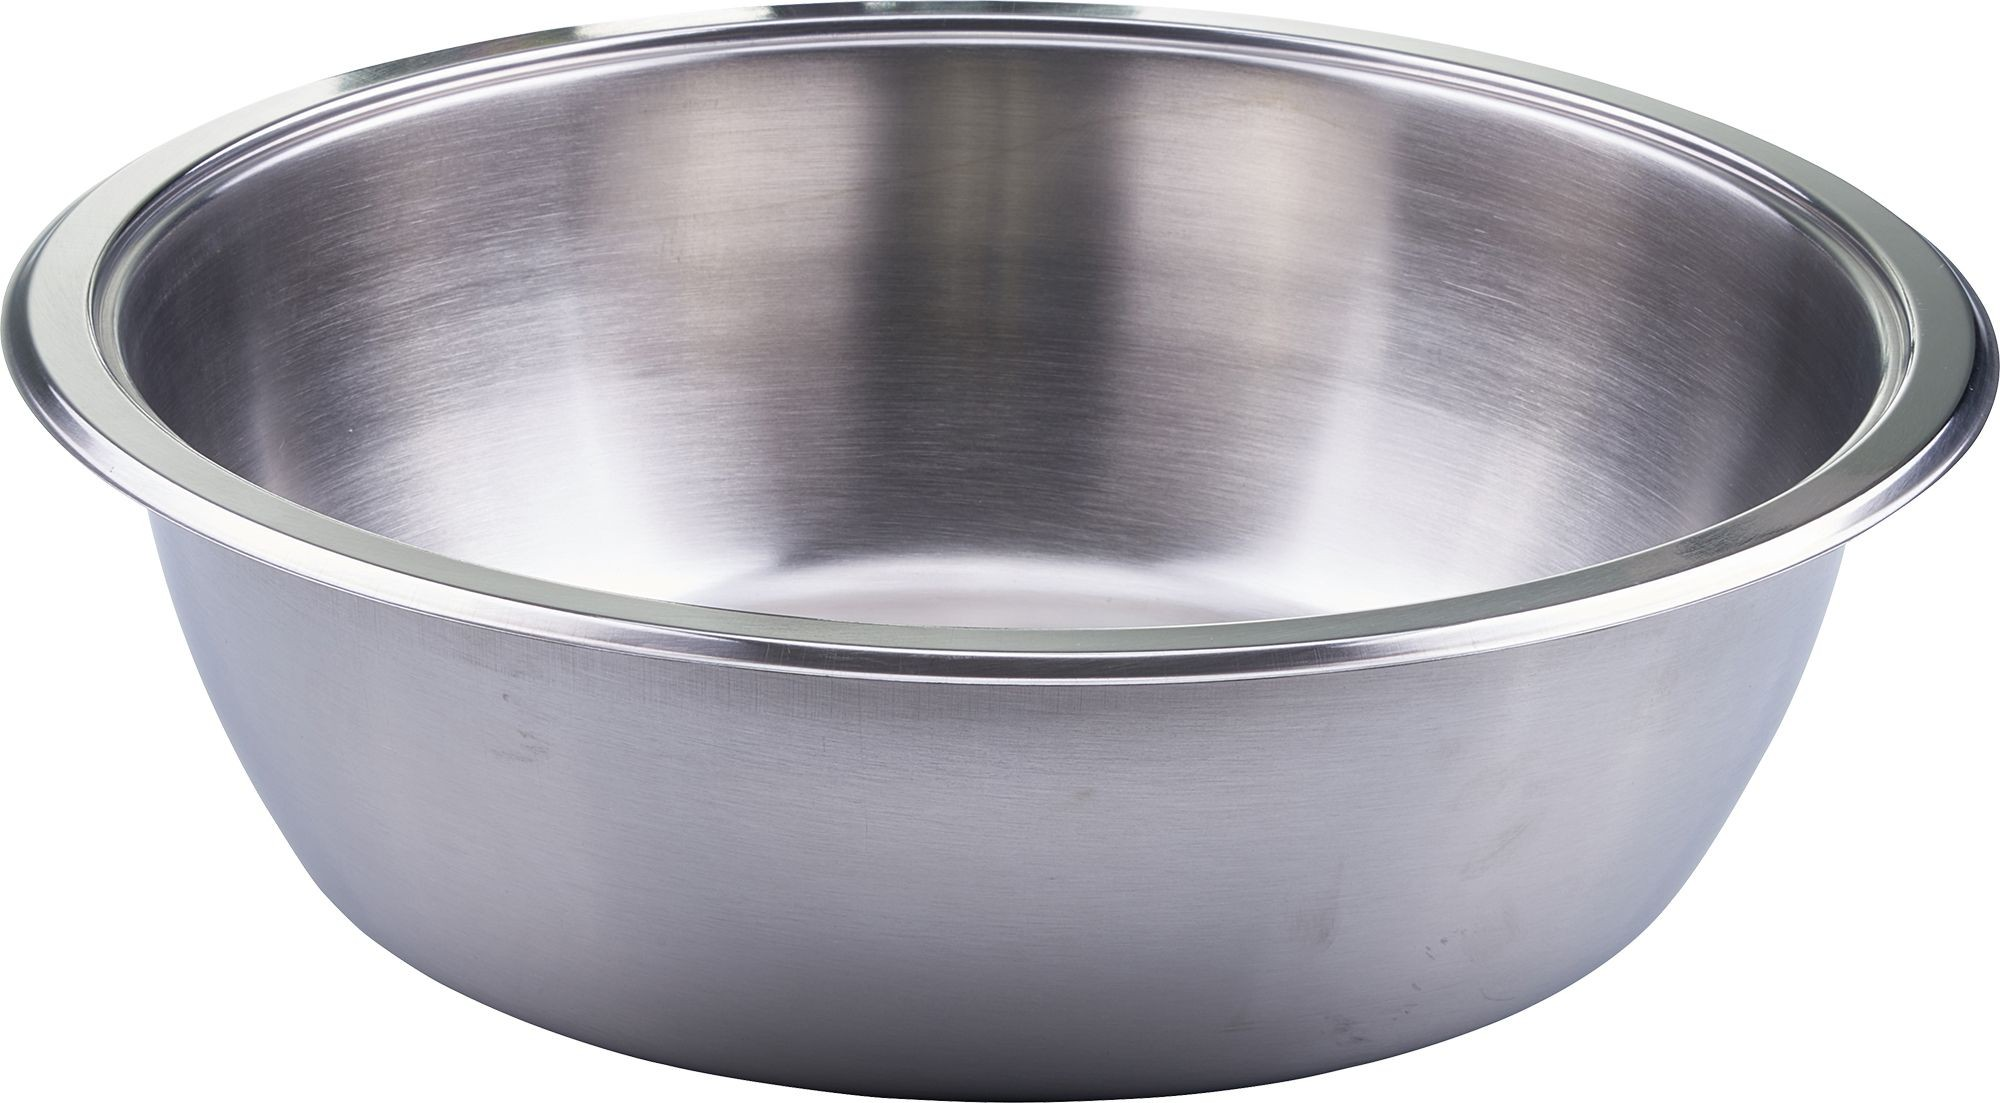 Winco 708-FP Food Pan for 5 Qt. Crown Round Chafer 708